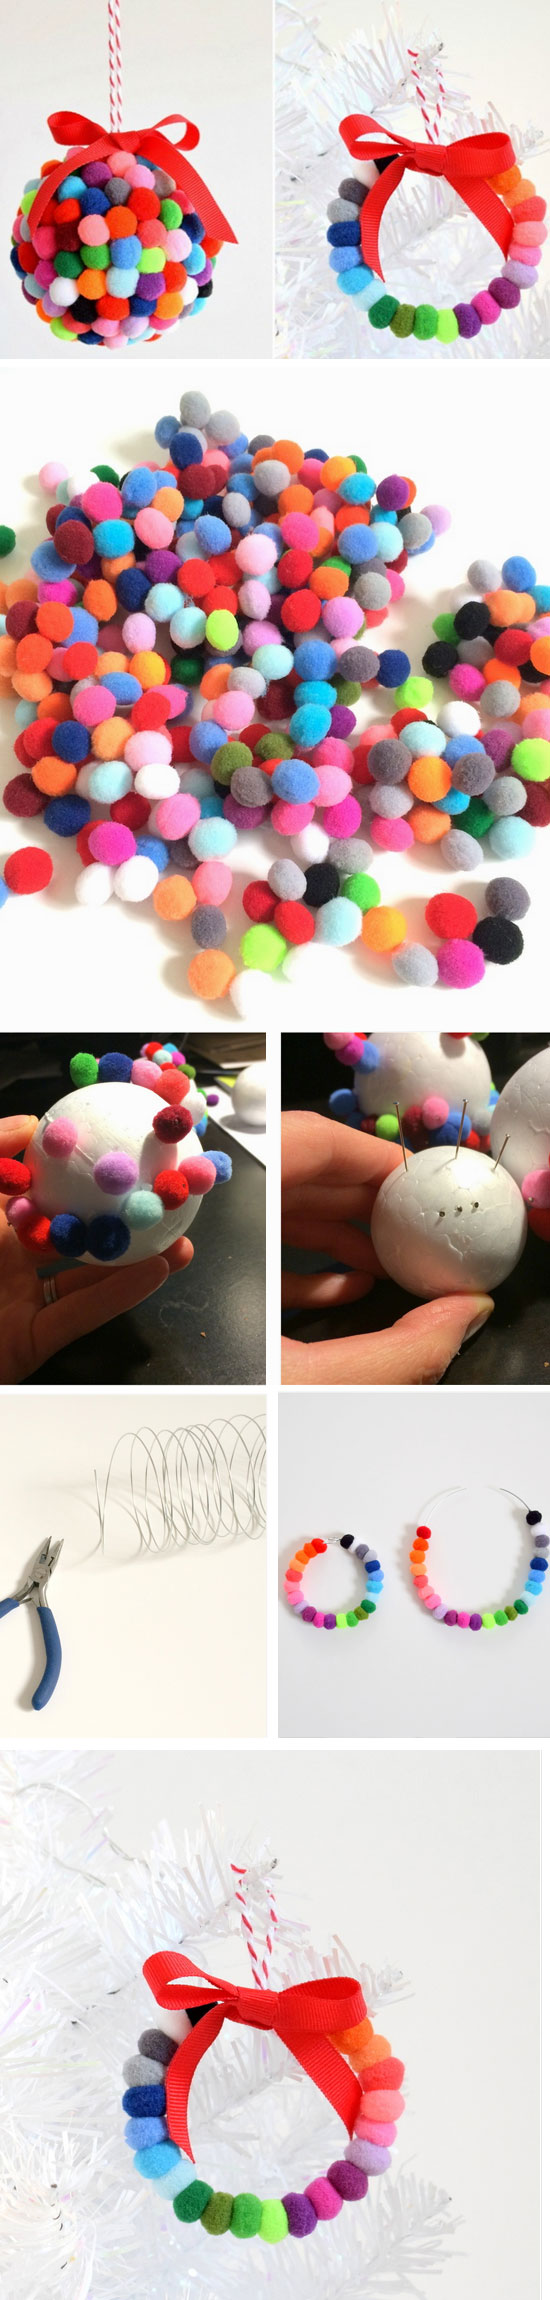 21 Super Easy DIY Christmas Crafts That Kids Can Make